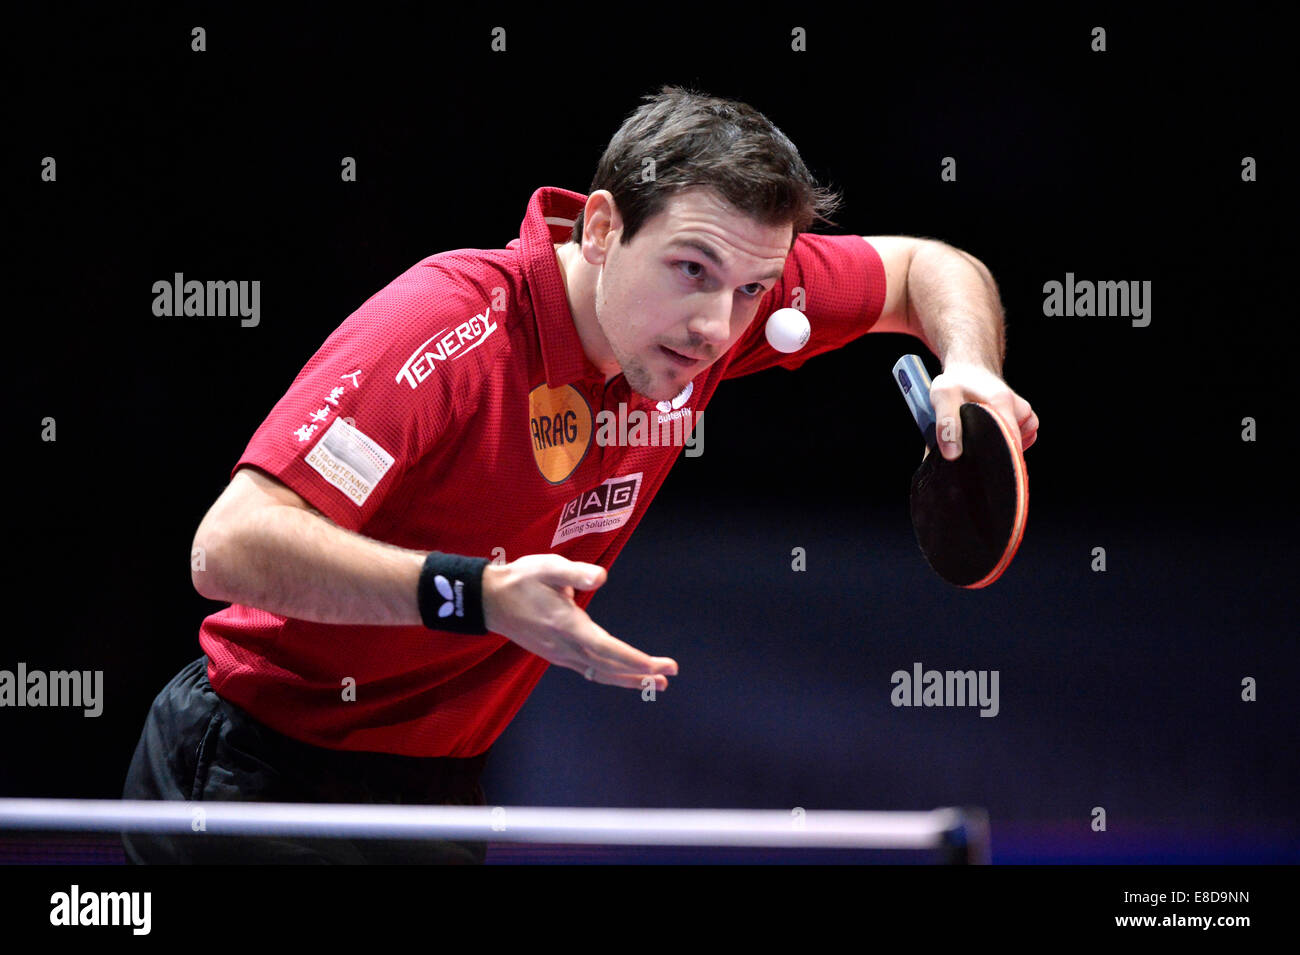 Timo Boll, GER, Table Tennis Cup final, Porsche Arena, Stuttgart, Baden-Württemberg, Germany - Stock Image